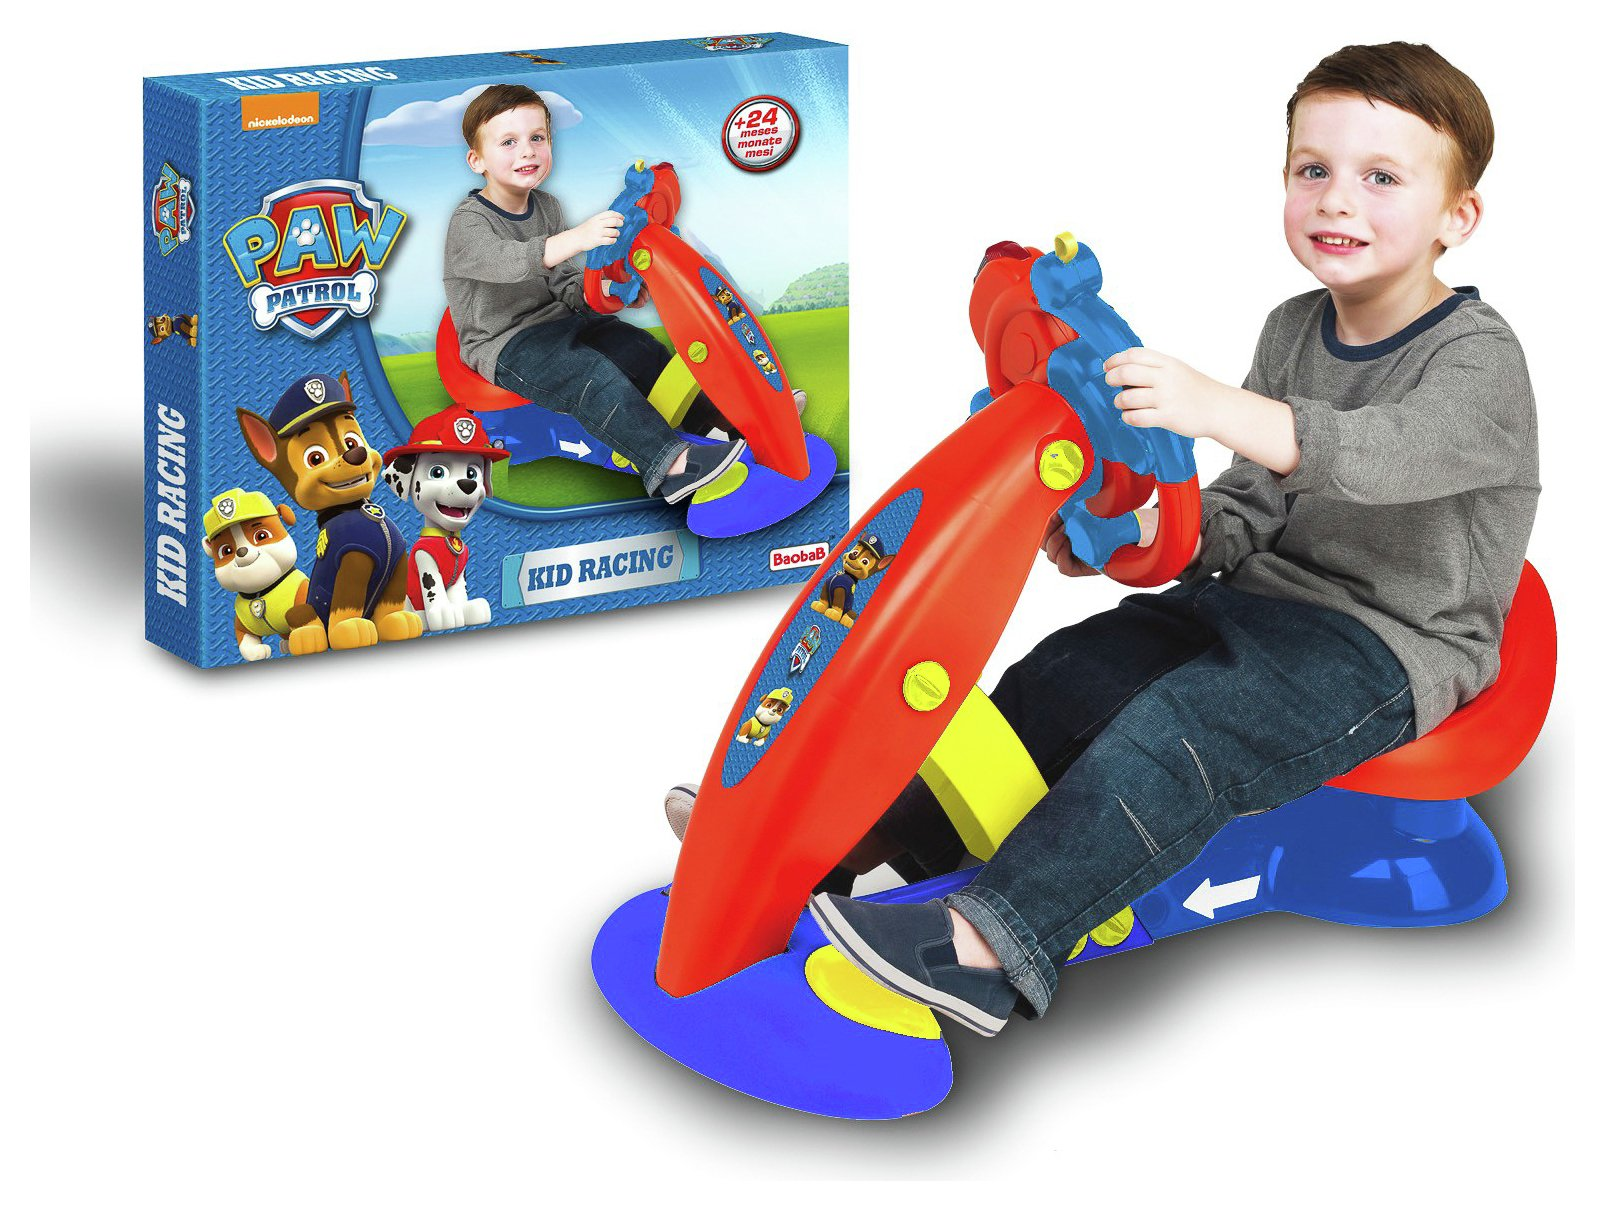 Image of PAW Patrol Driving Simulator Vehicle.